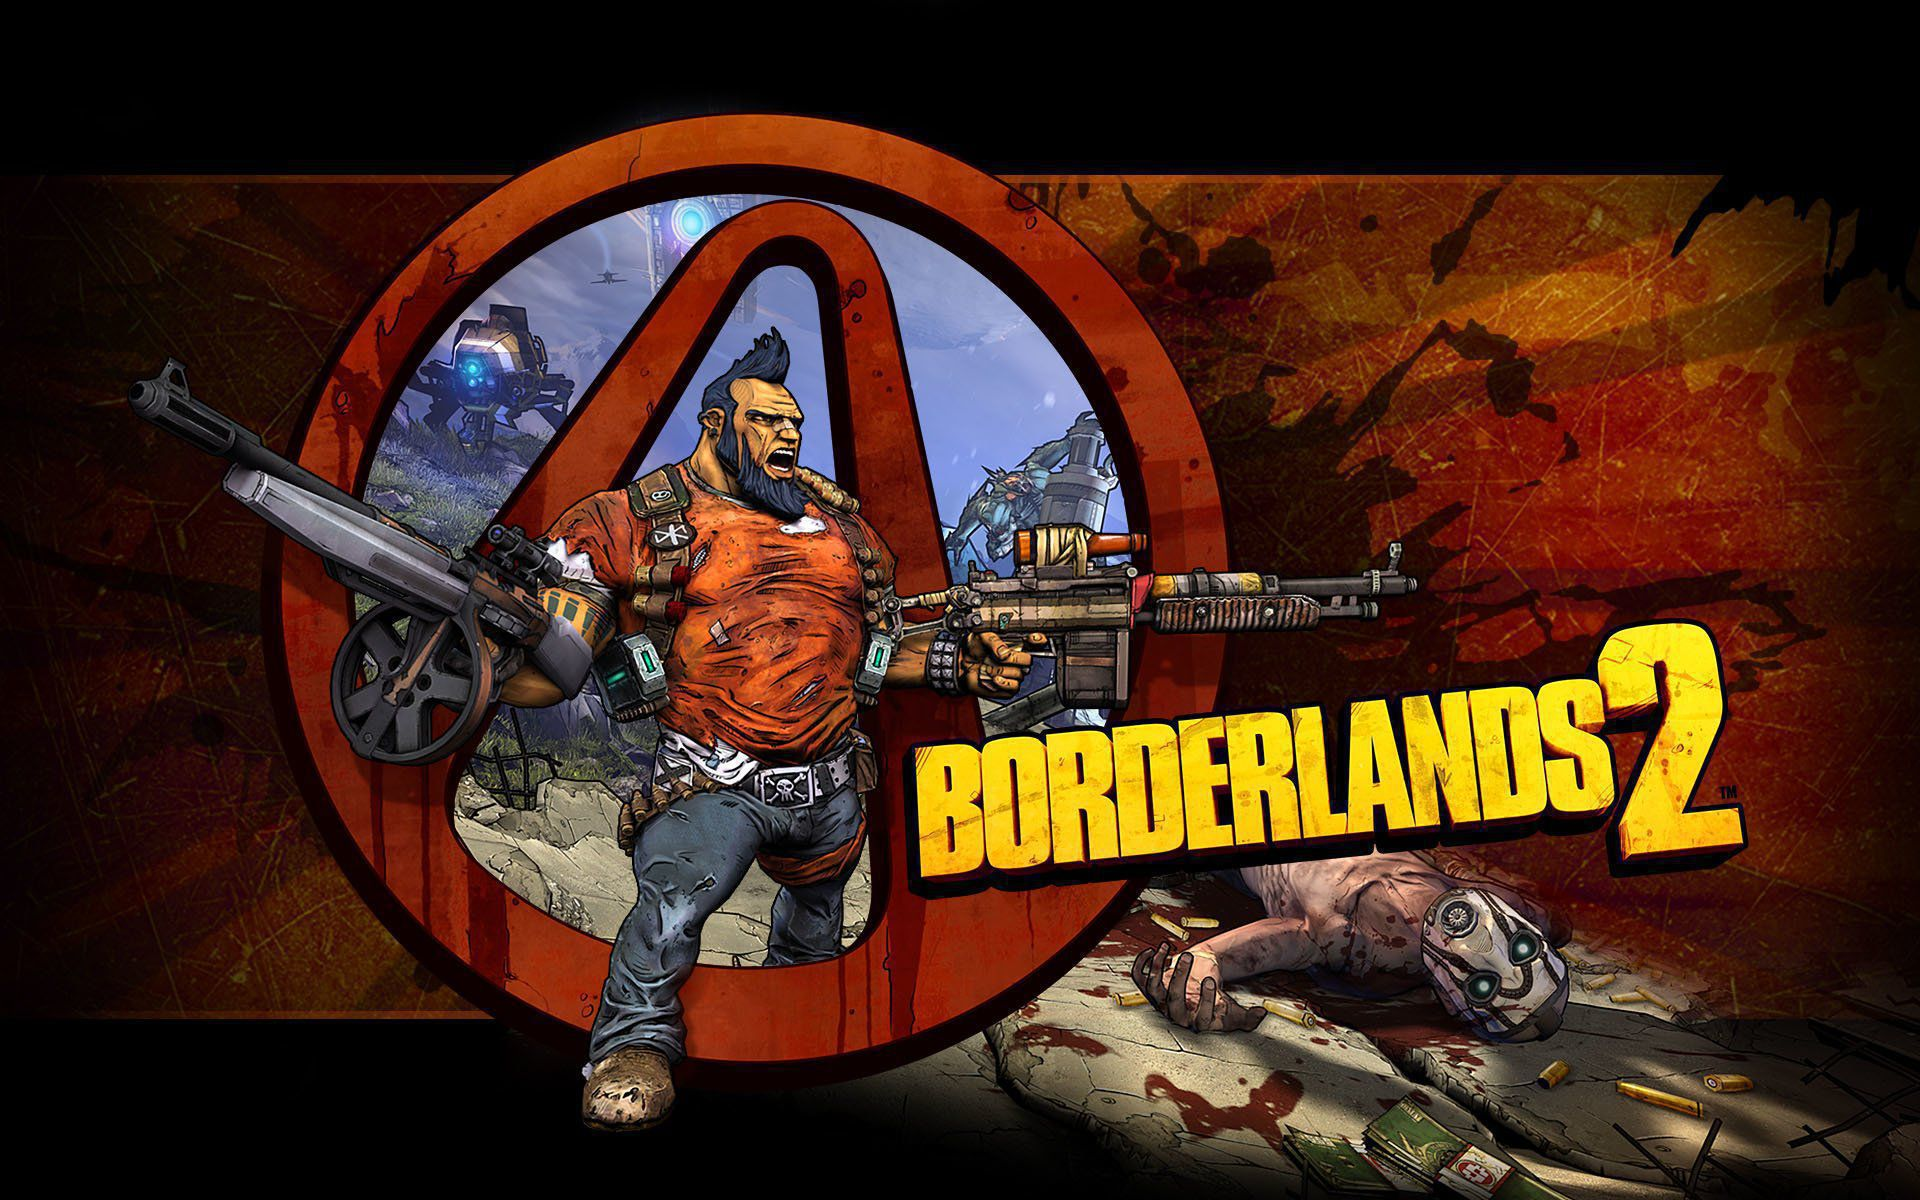 Borderlands 2 Tumblr